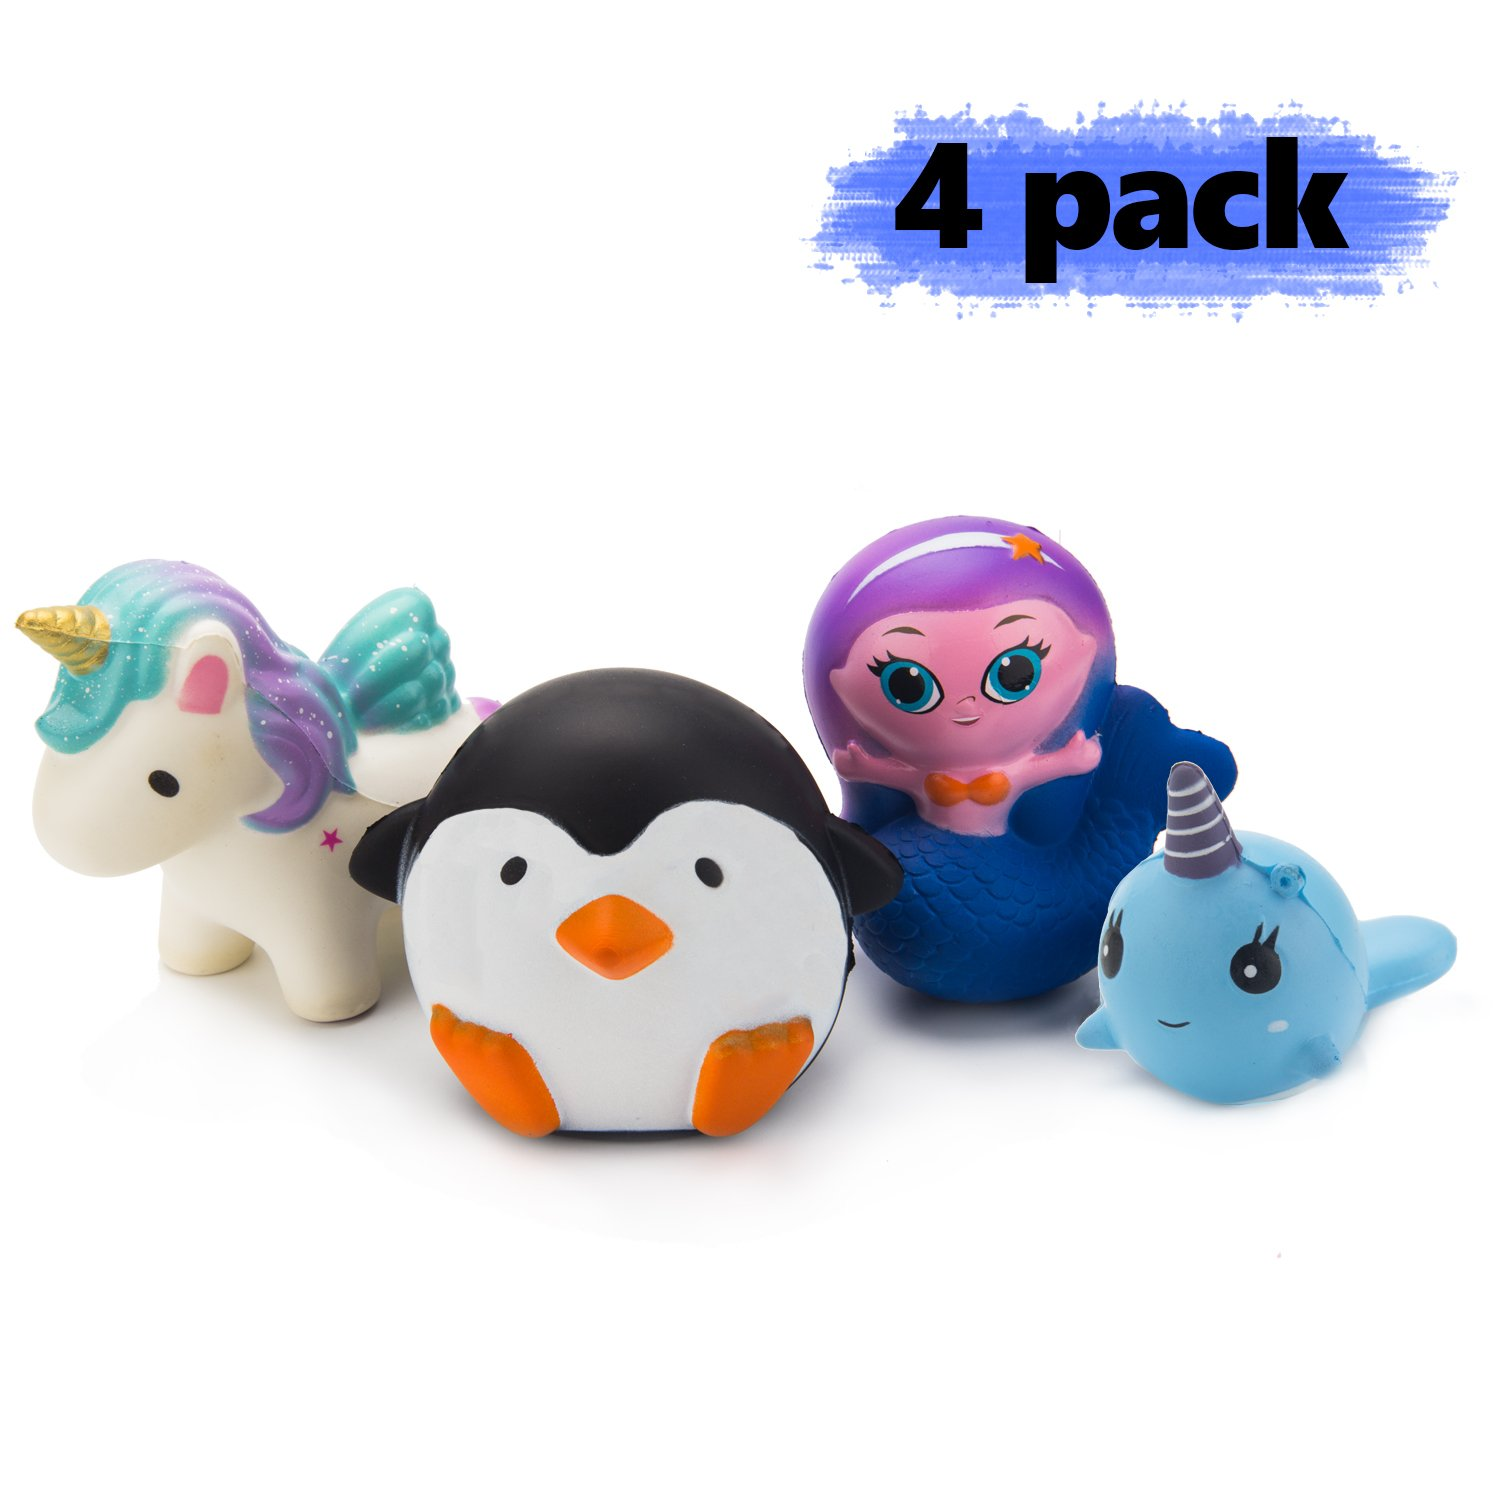 Grobro7 Kawaii Animal Slow Rising Squishy, Scented Soft Stress Relief Toy, Decorative Gift for Kids Party Toy, Including Cute mermaid, Penguin , Whale and Unicorn,4 Pack